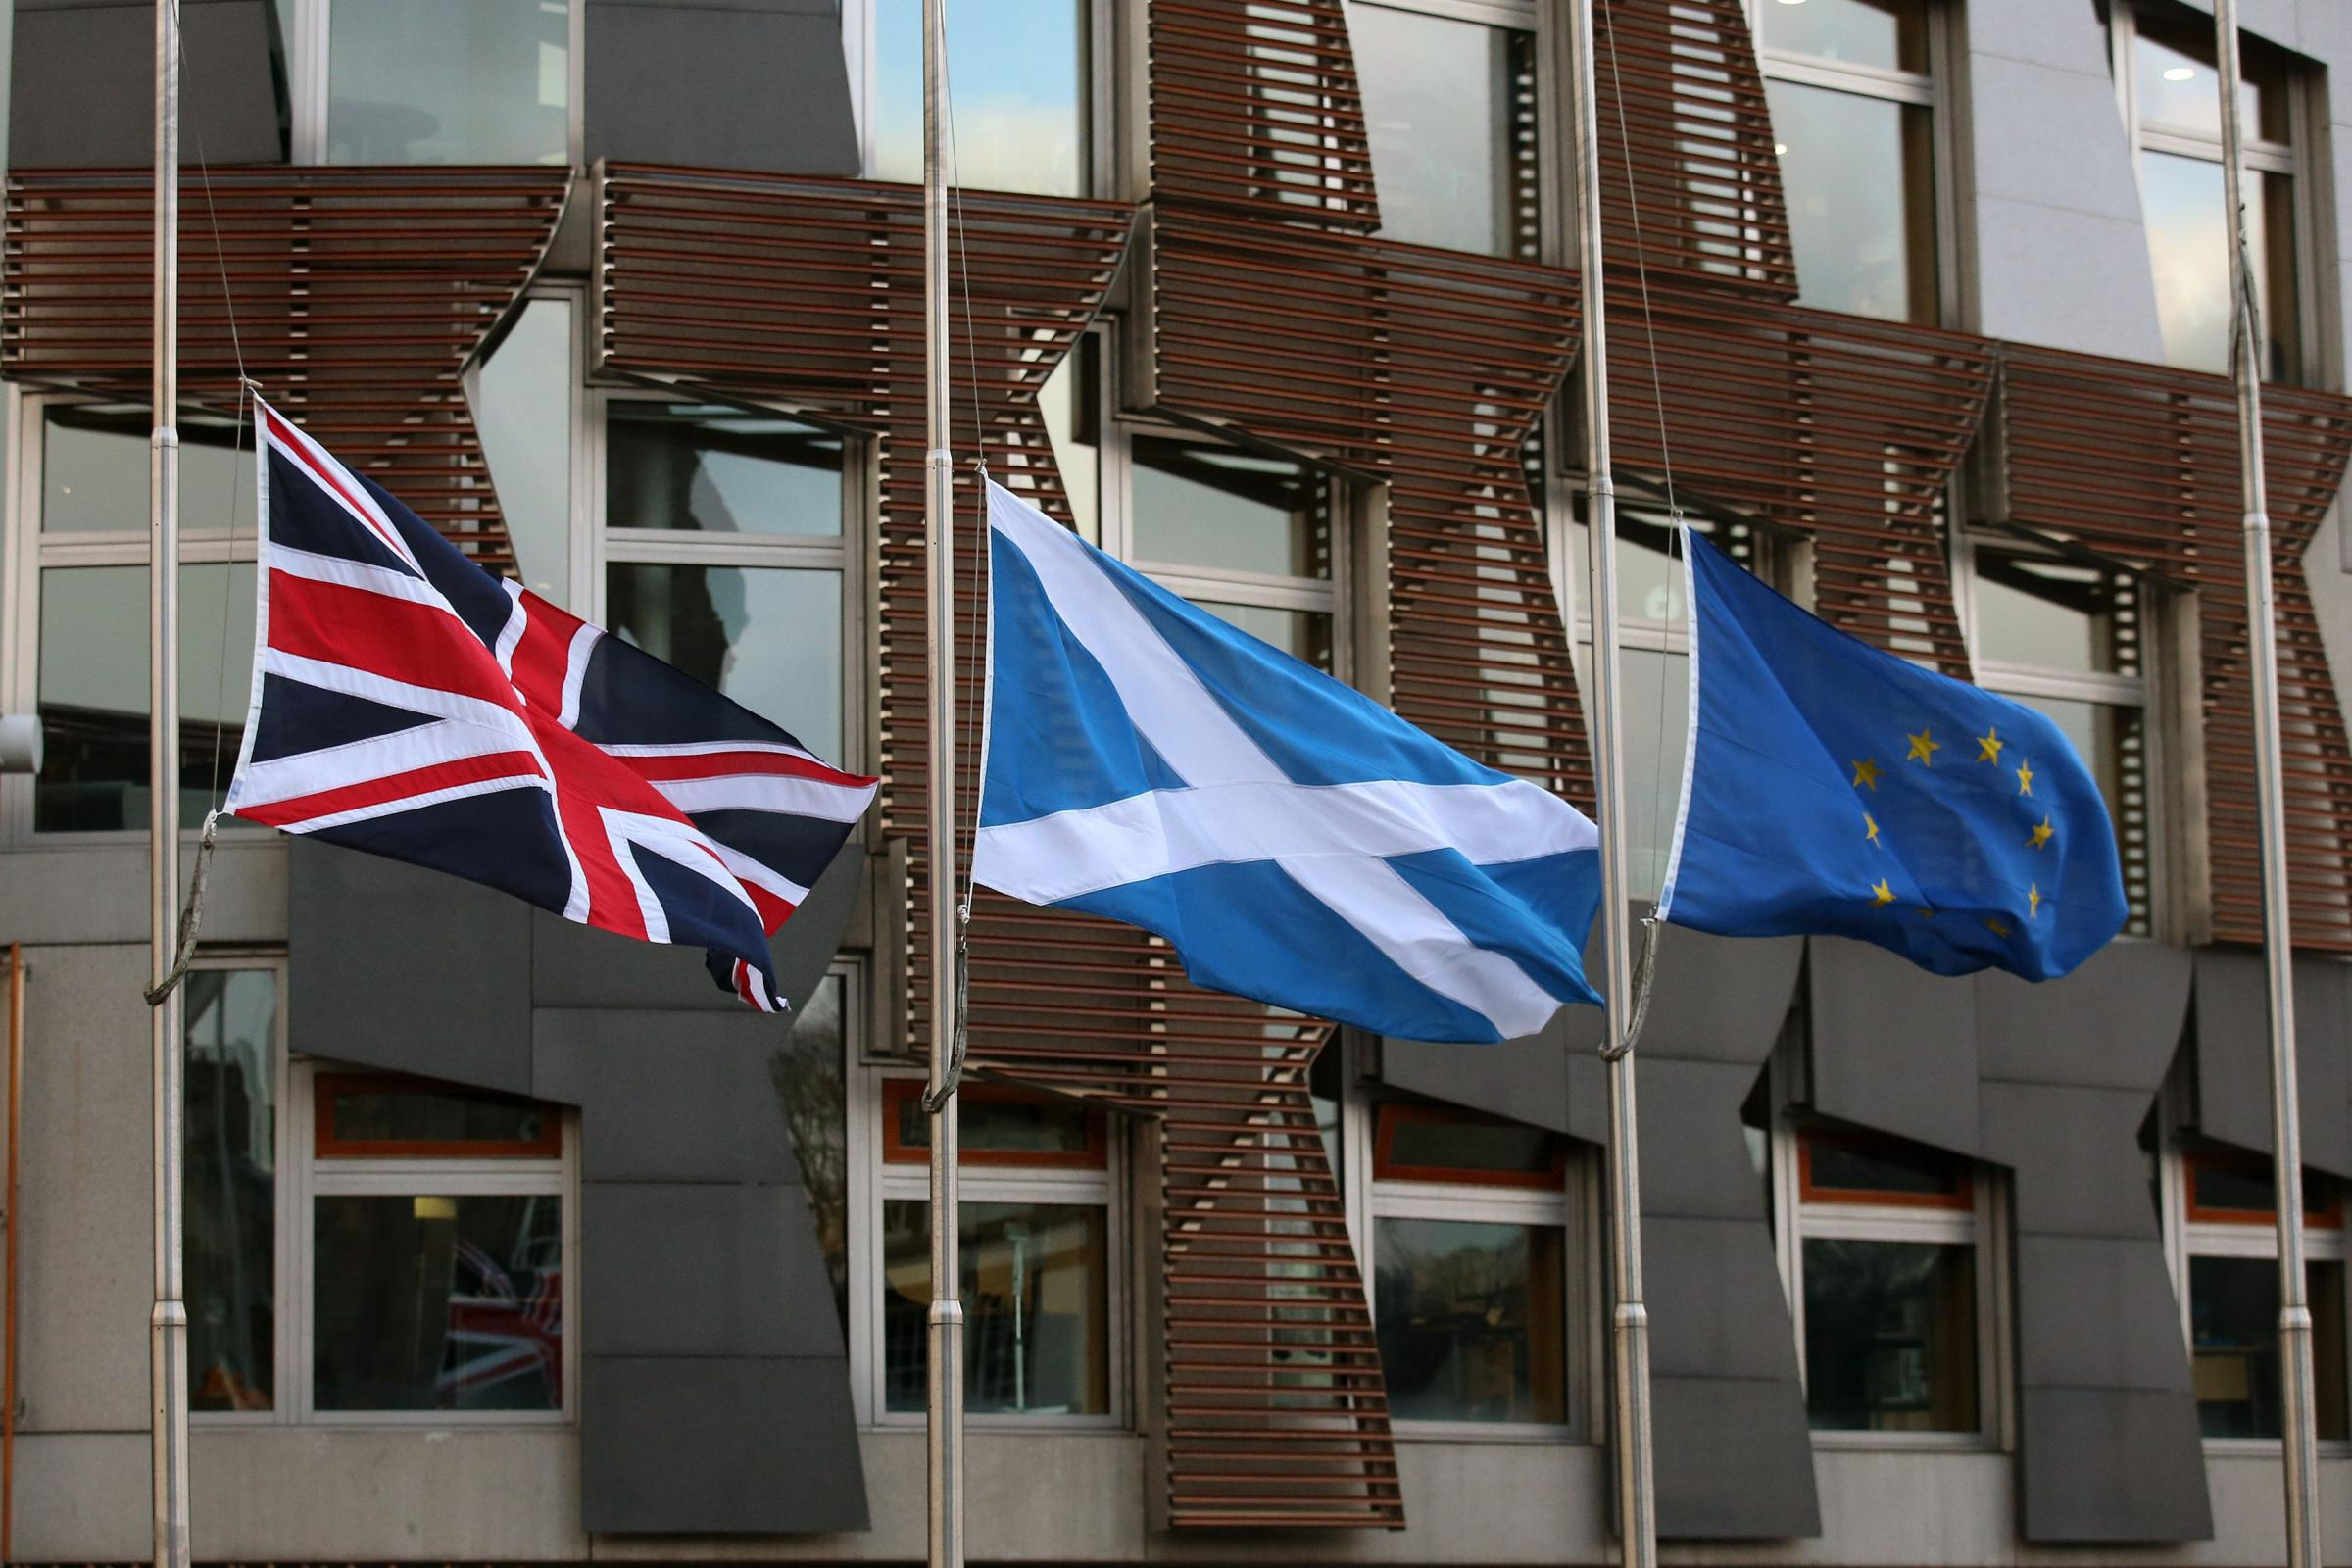 Flags outside of Holyrood